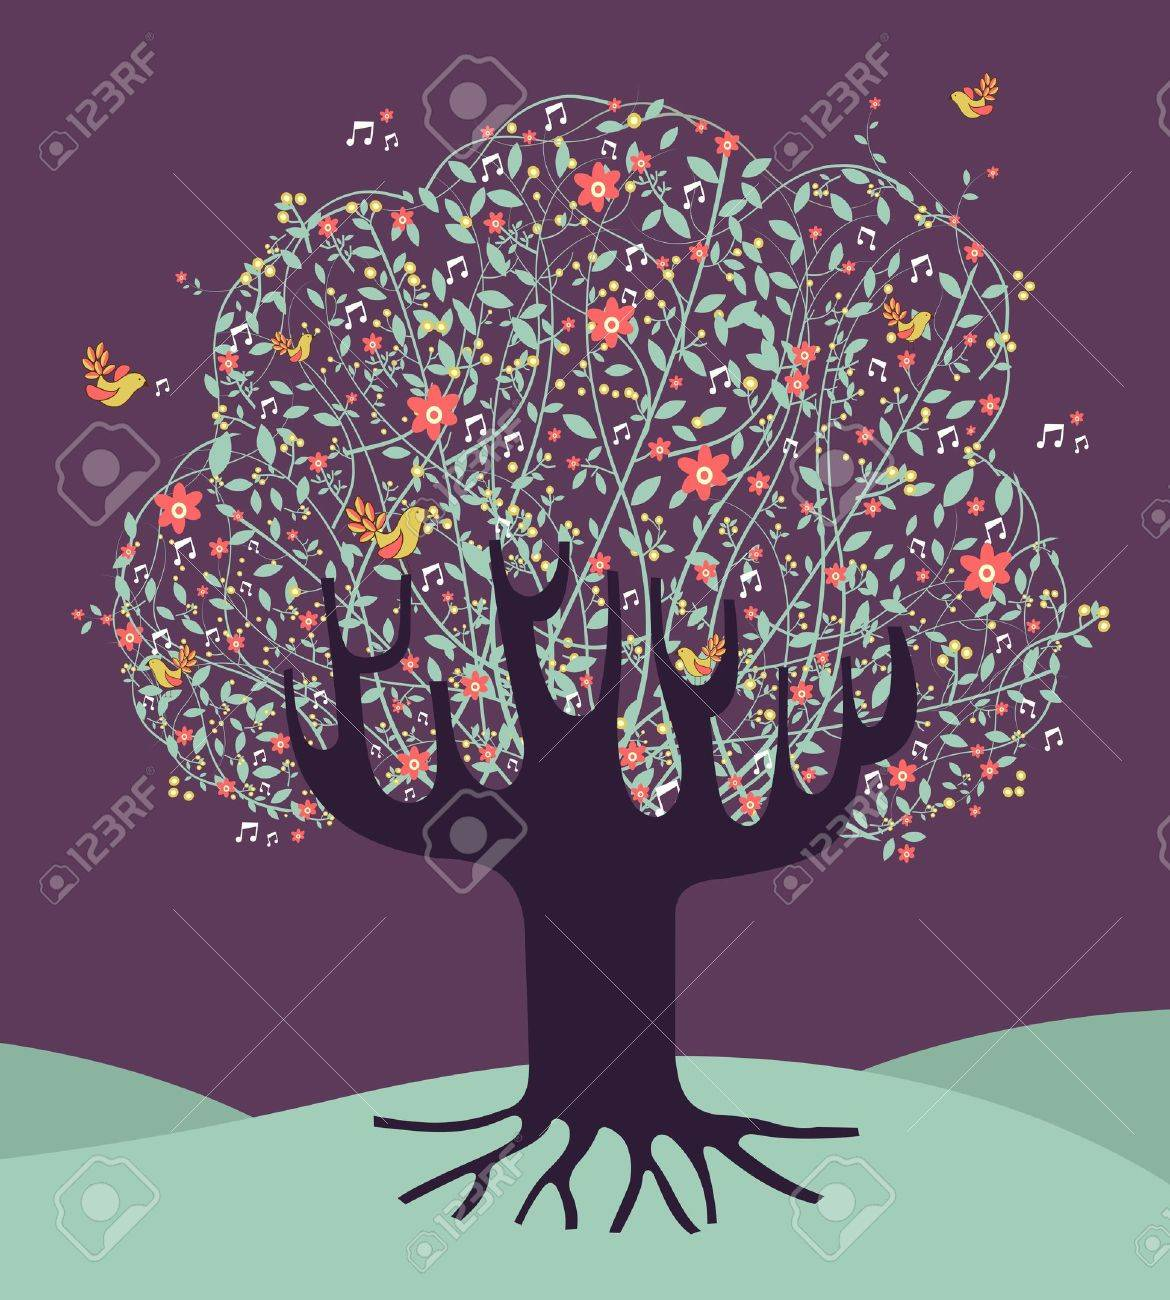 Musical spring time tree composition with flowers file layered for easy manipulation and custom coloring. Stock Vector - 16105565